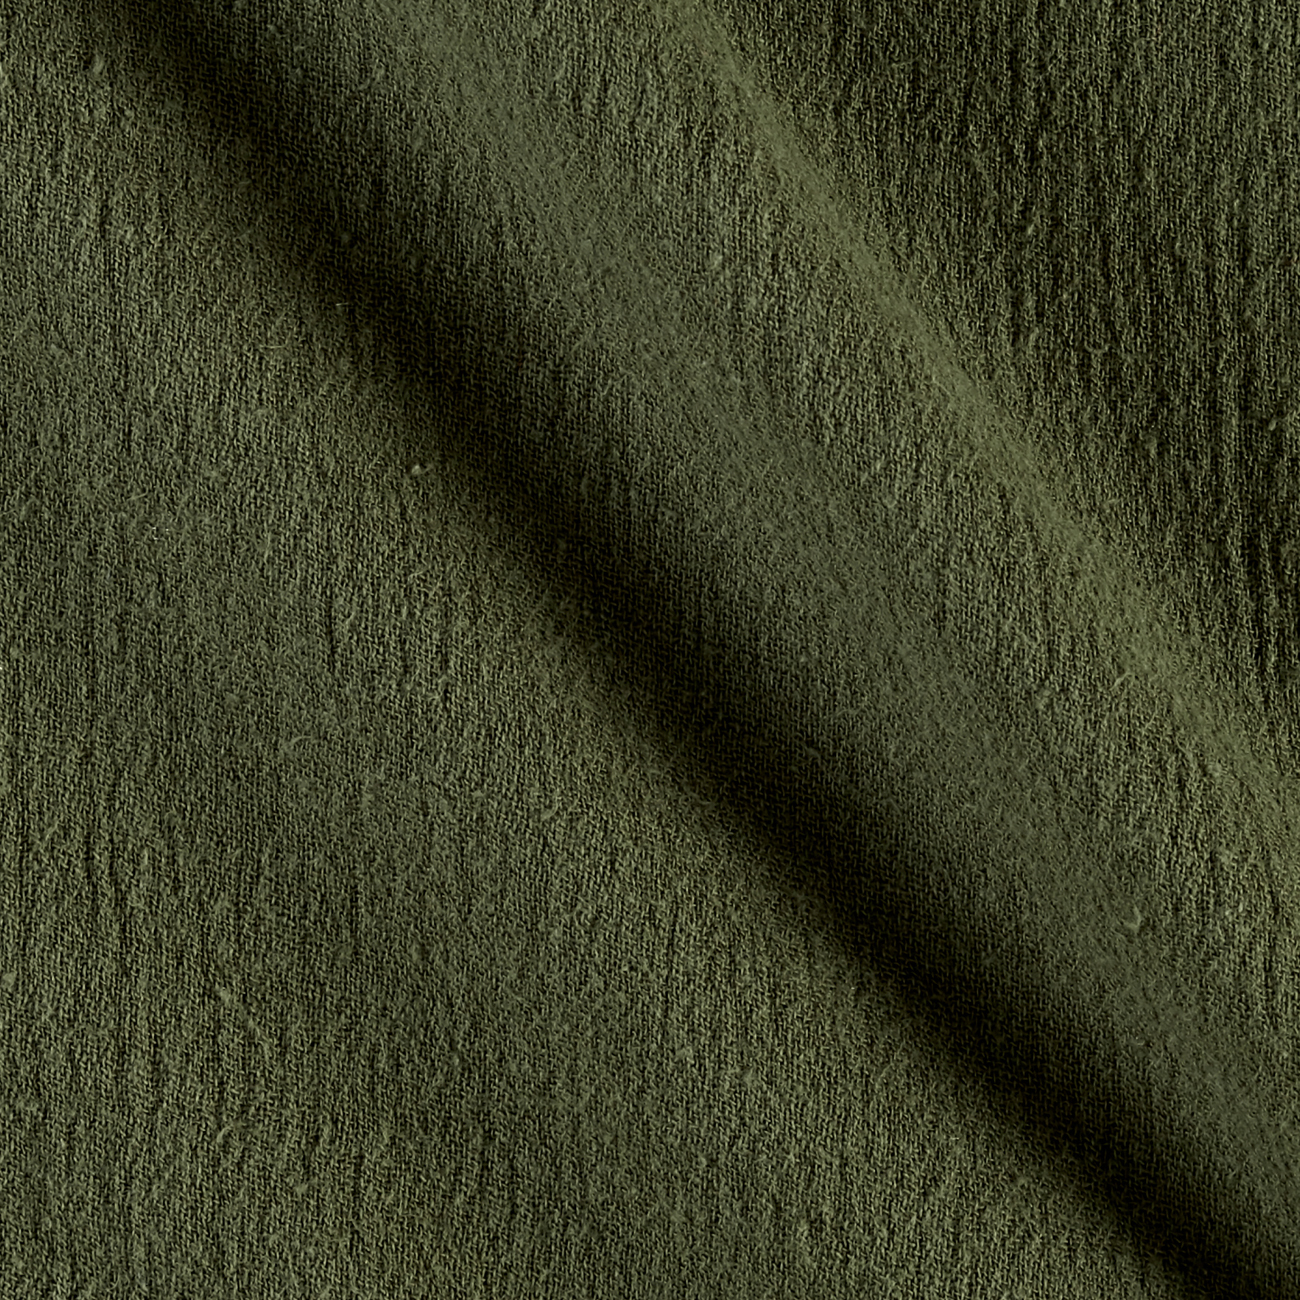 Island Breeze Gauze Olive Fabric by Ben in USA